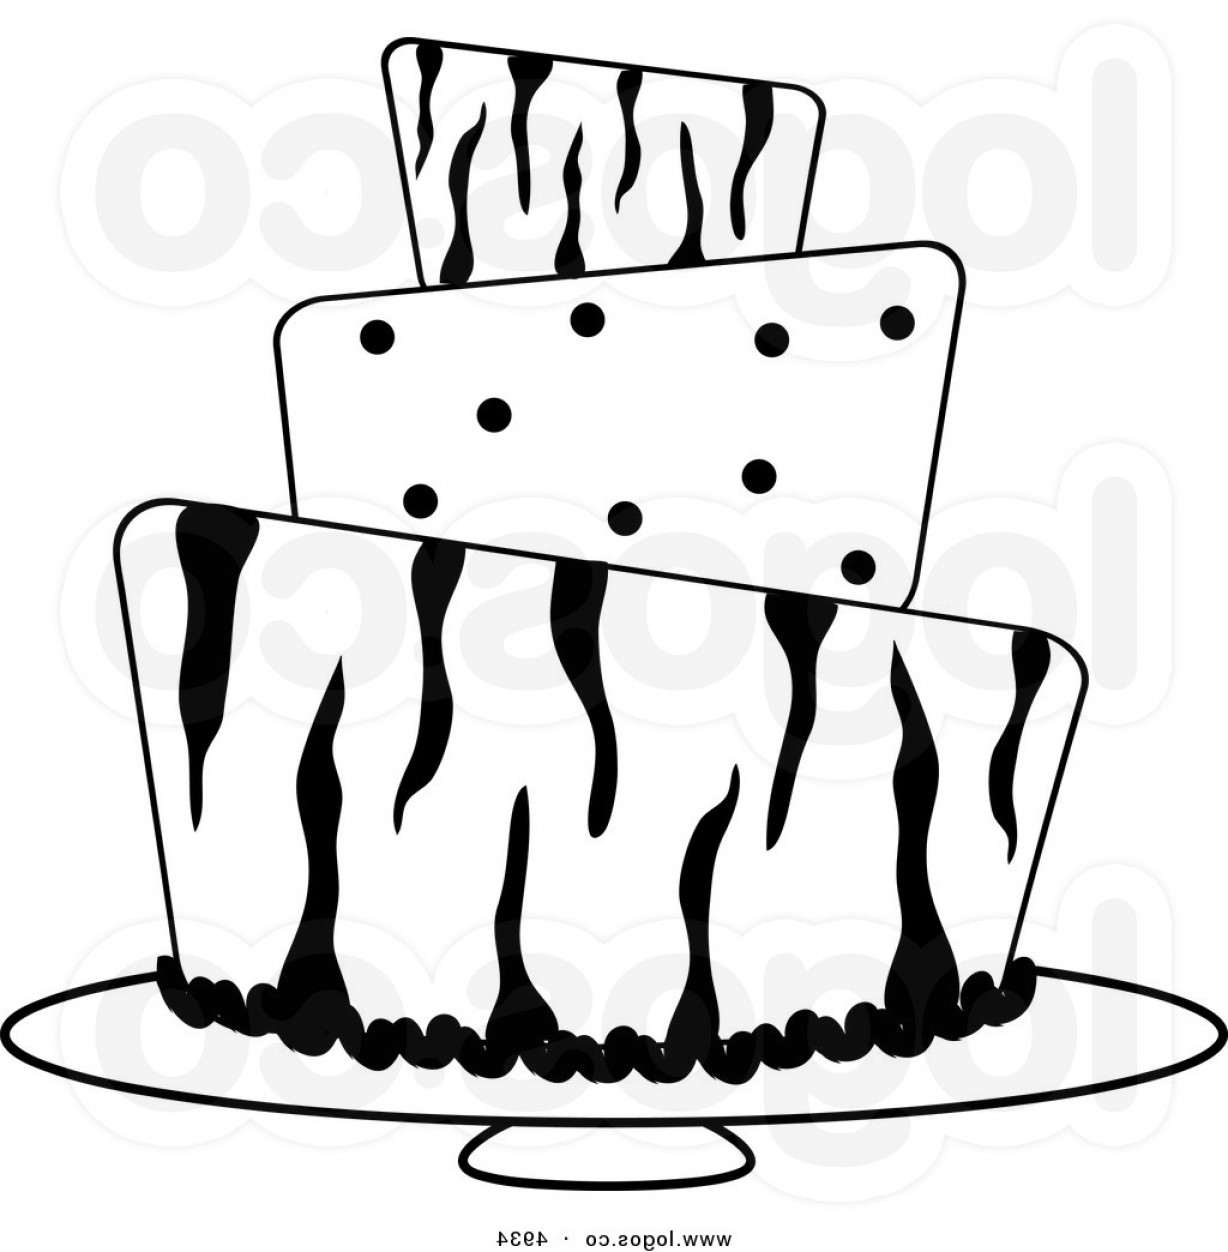 Wedding Cake Silhouette Clip Art at GetDrawings | Free ...